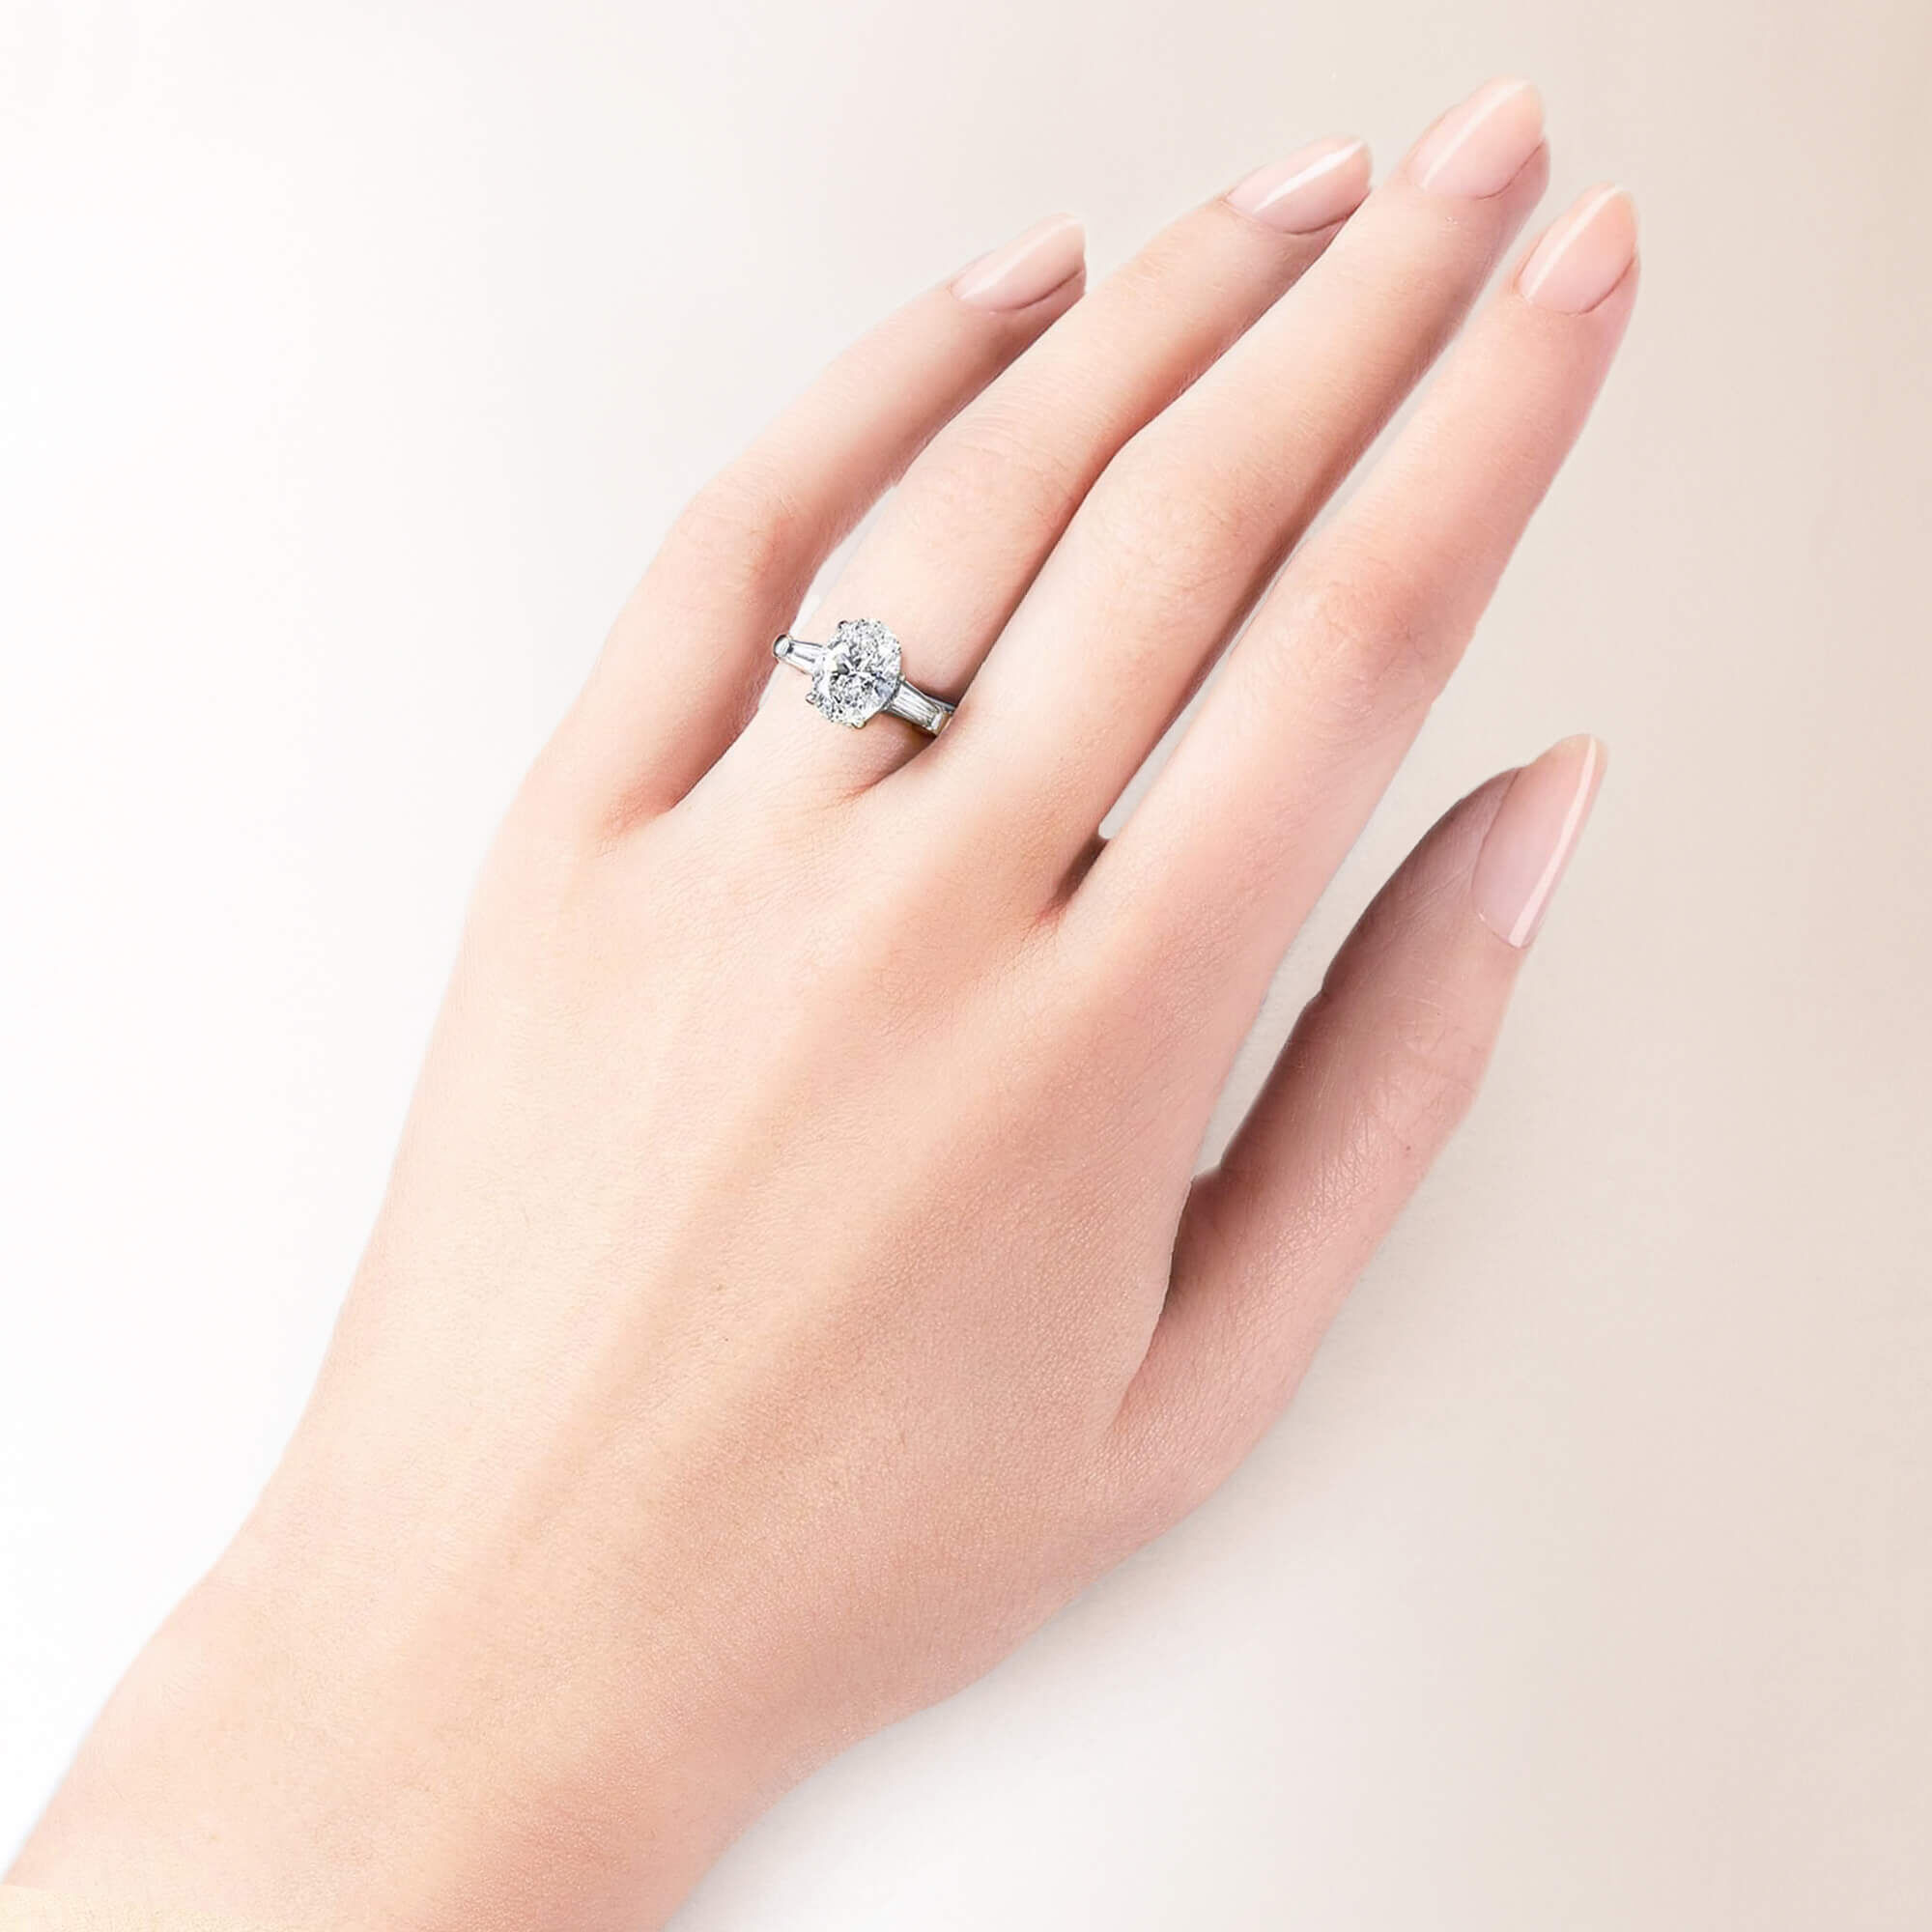 A models hand wearing a Graff oval shape diamond engagement ring